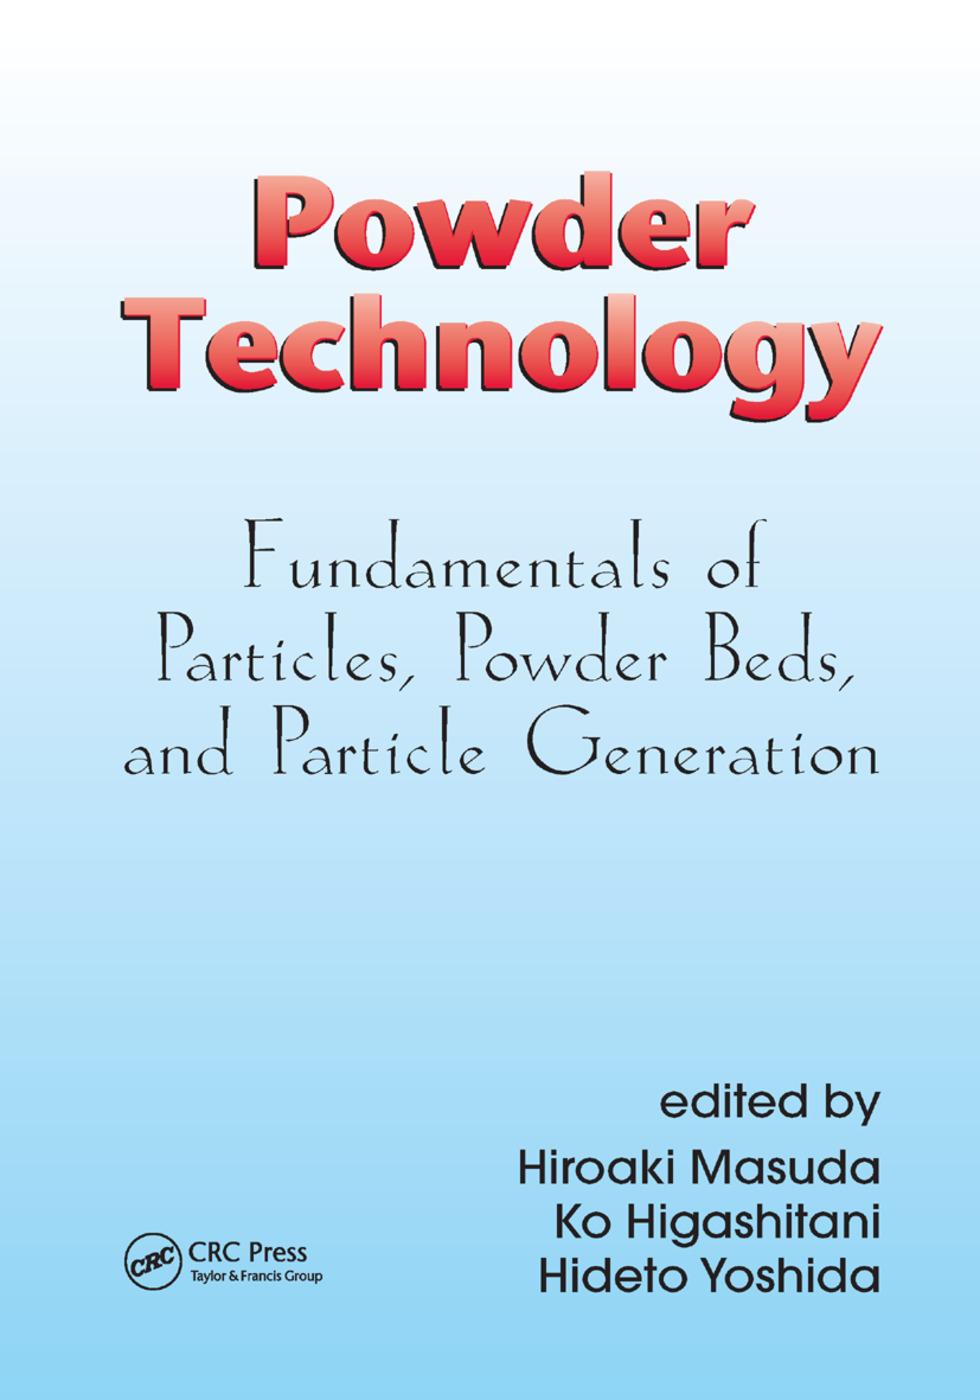 Powder Technology: Fundamentals of Particles, Powder Beds, and Particle Generation, 1st Edition (Paperback) book cover